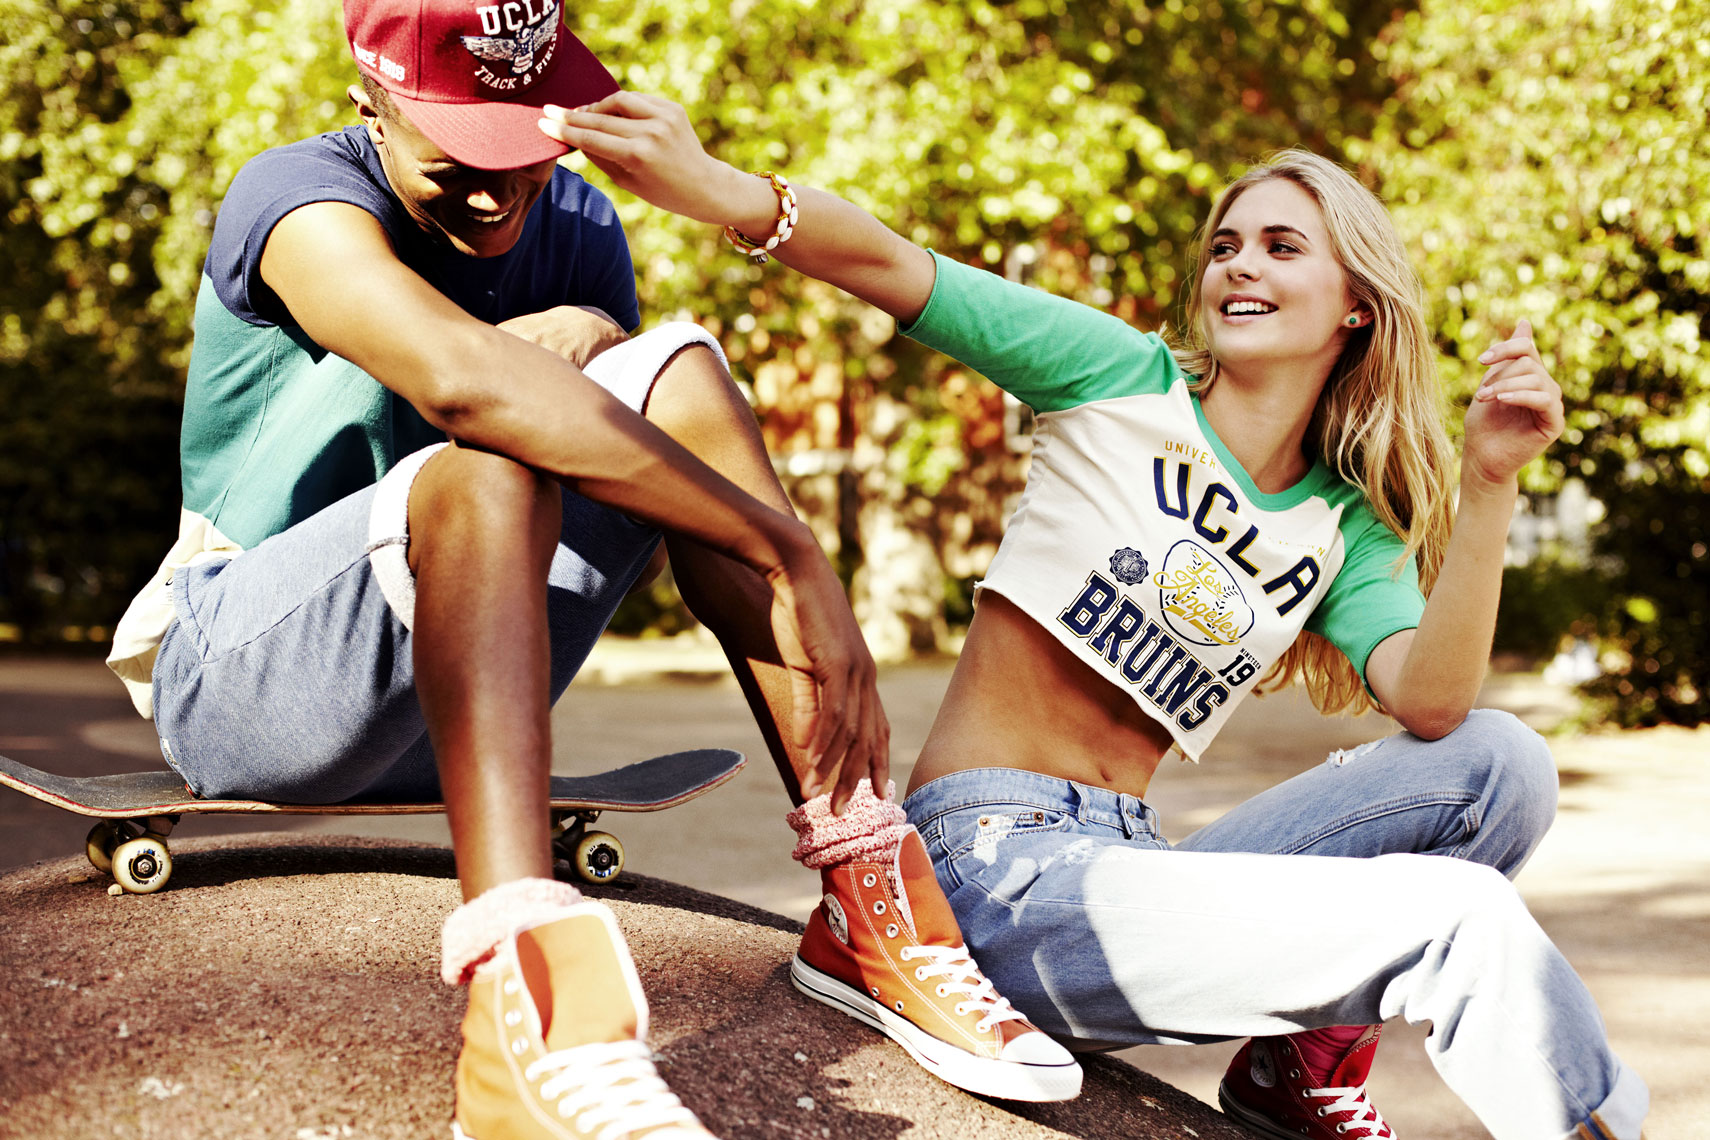 issie-gibbons-fashion-stylist-UCLA-SS13-Skateboard-park